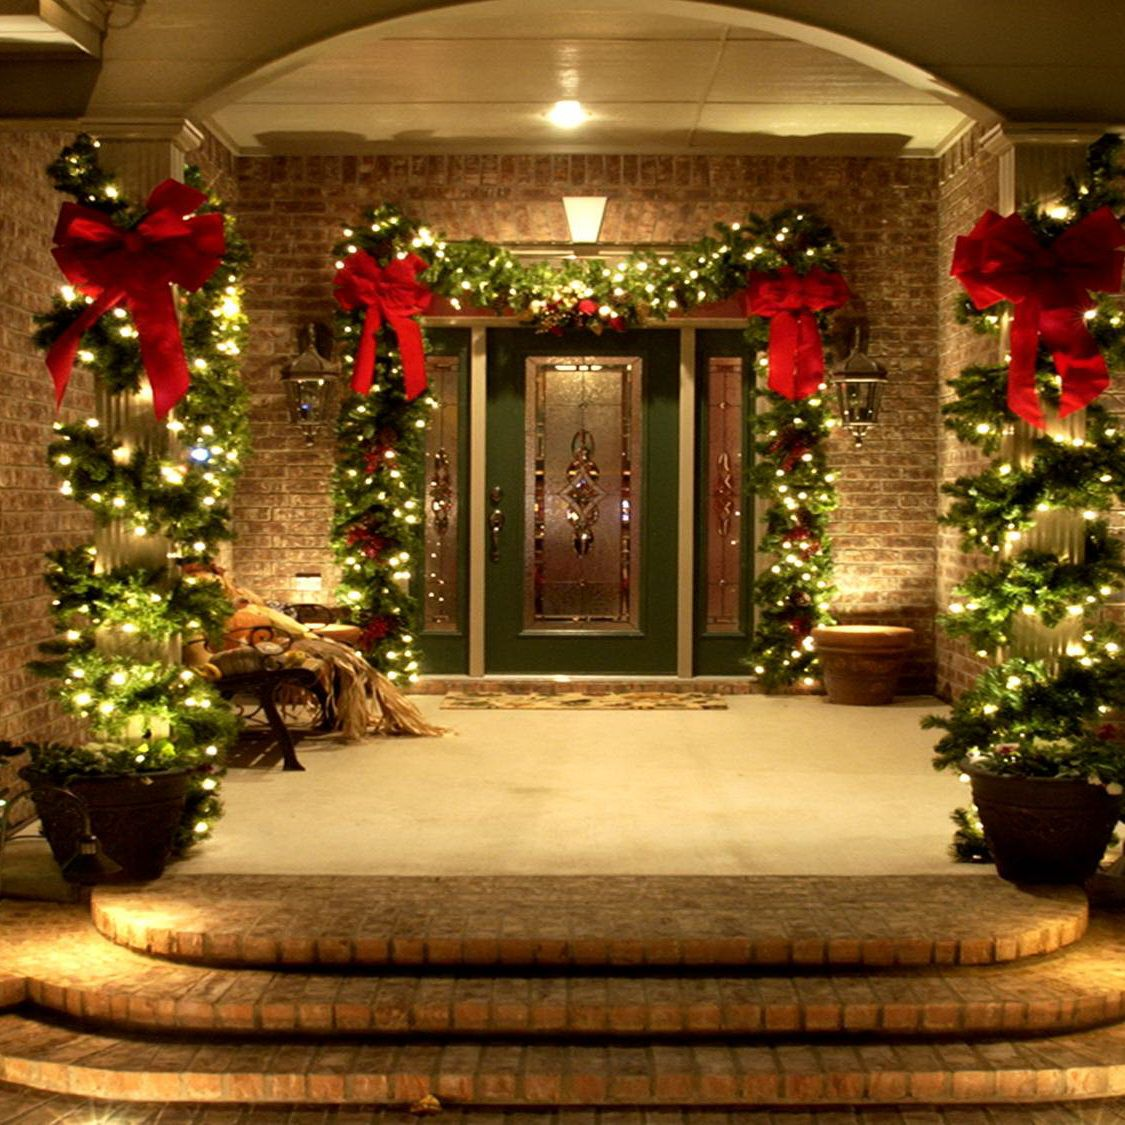 18 Most Striking DIY Christmas Porch Decorations That Will Melt